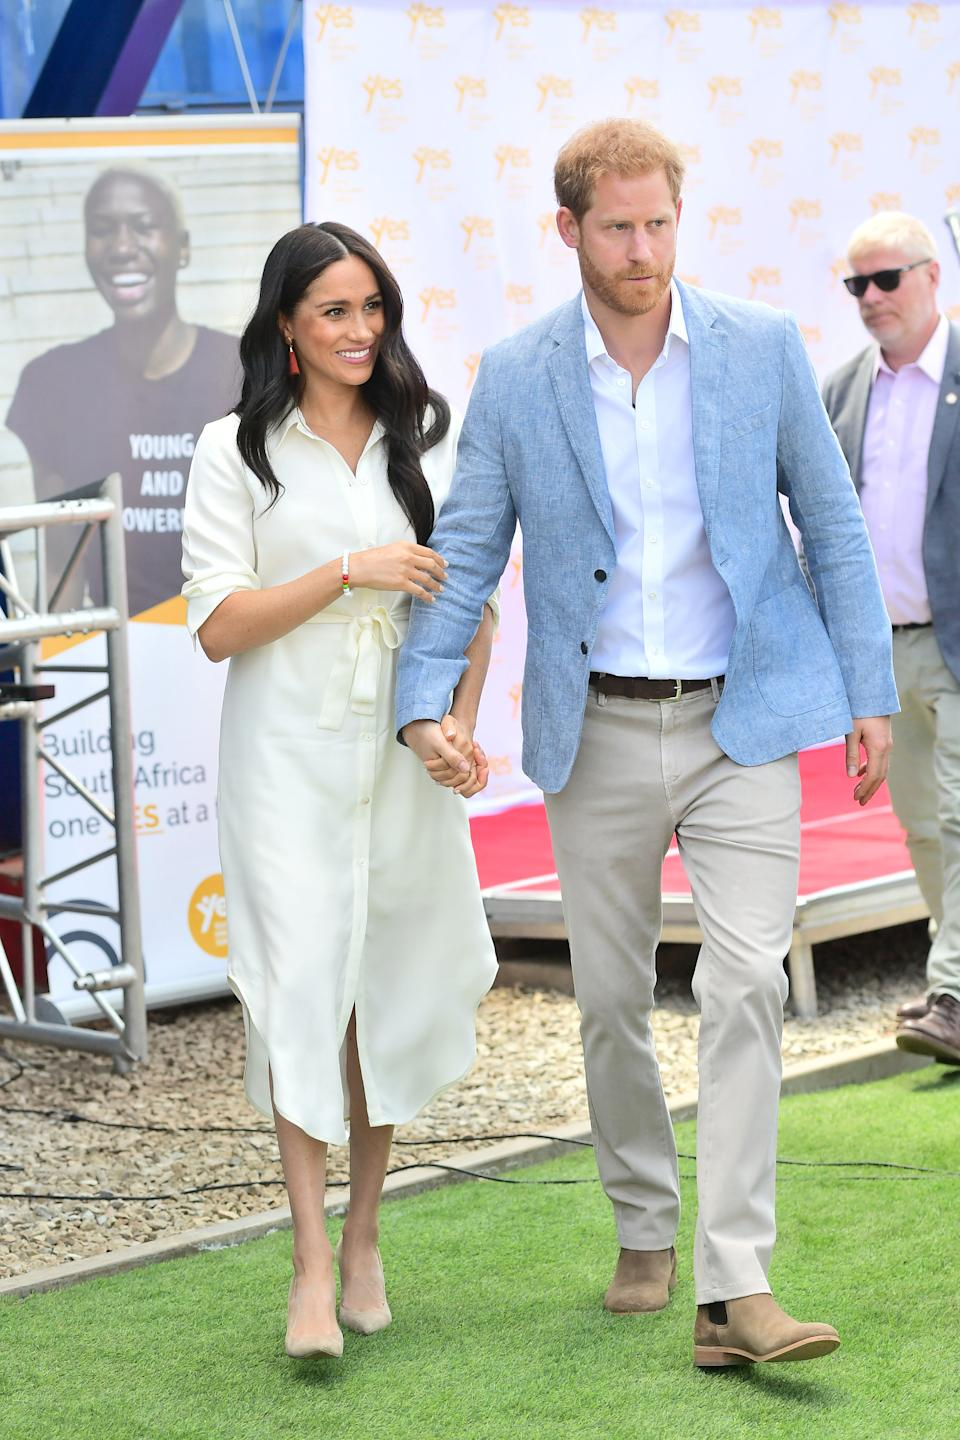 The Duke and Duchess of Sussex arrive at the township of Tembisa on their final day of royal tour [Photo: Getty]